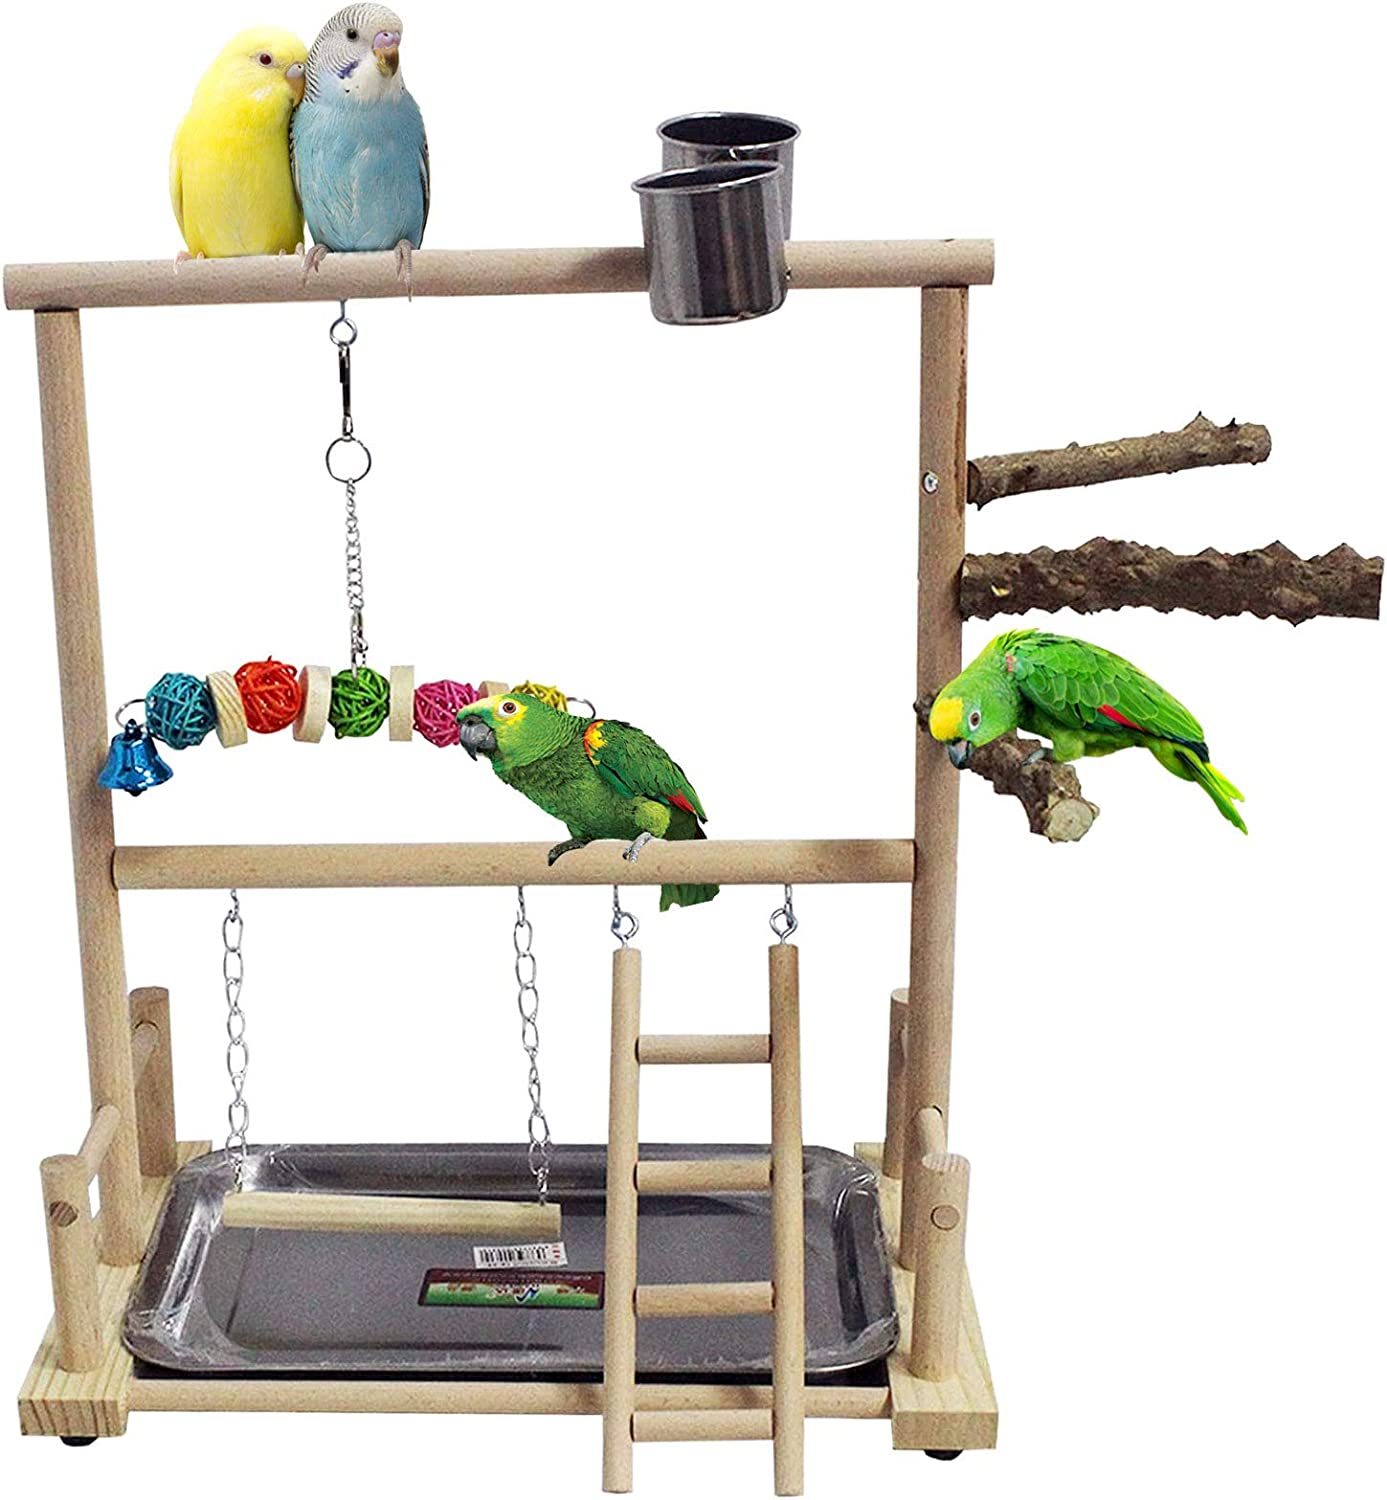 kathson Bird San Diego Mall Playground Price reduction Parrot Playstand Perch L Wood Toys Stand